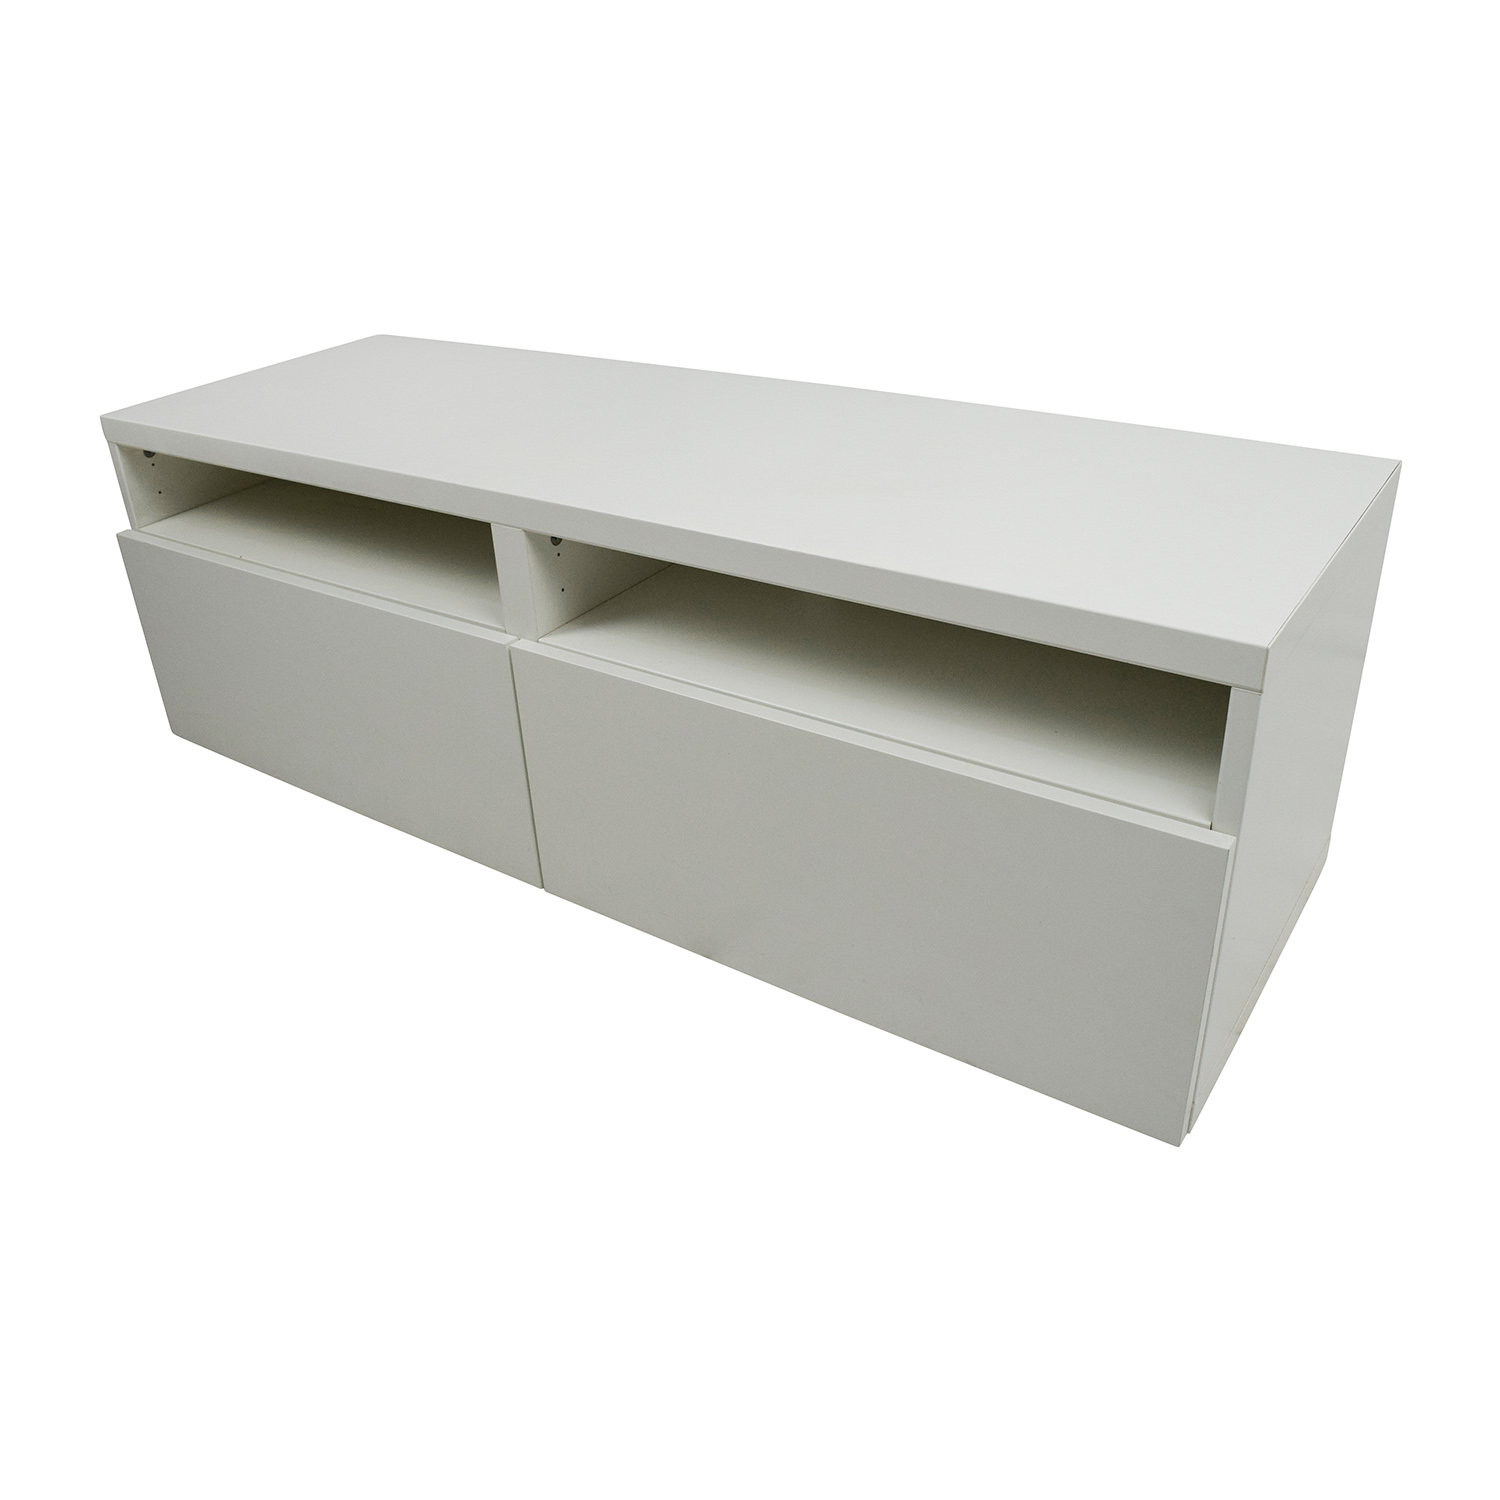 50 off ikea ikea media unit with drawers storage. Black Bedroom Furniture Sets. Home Design Ideas